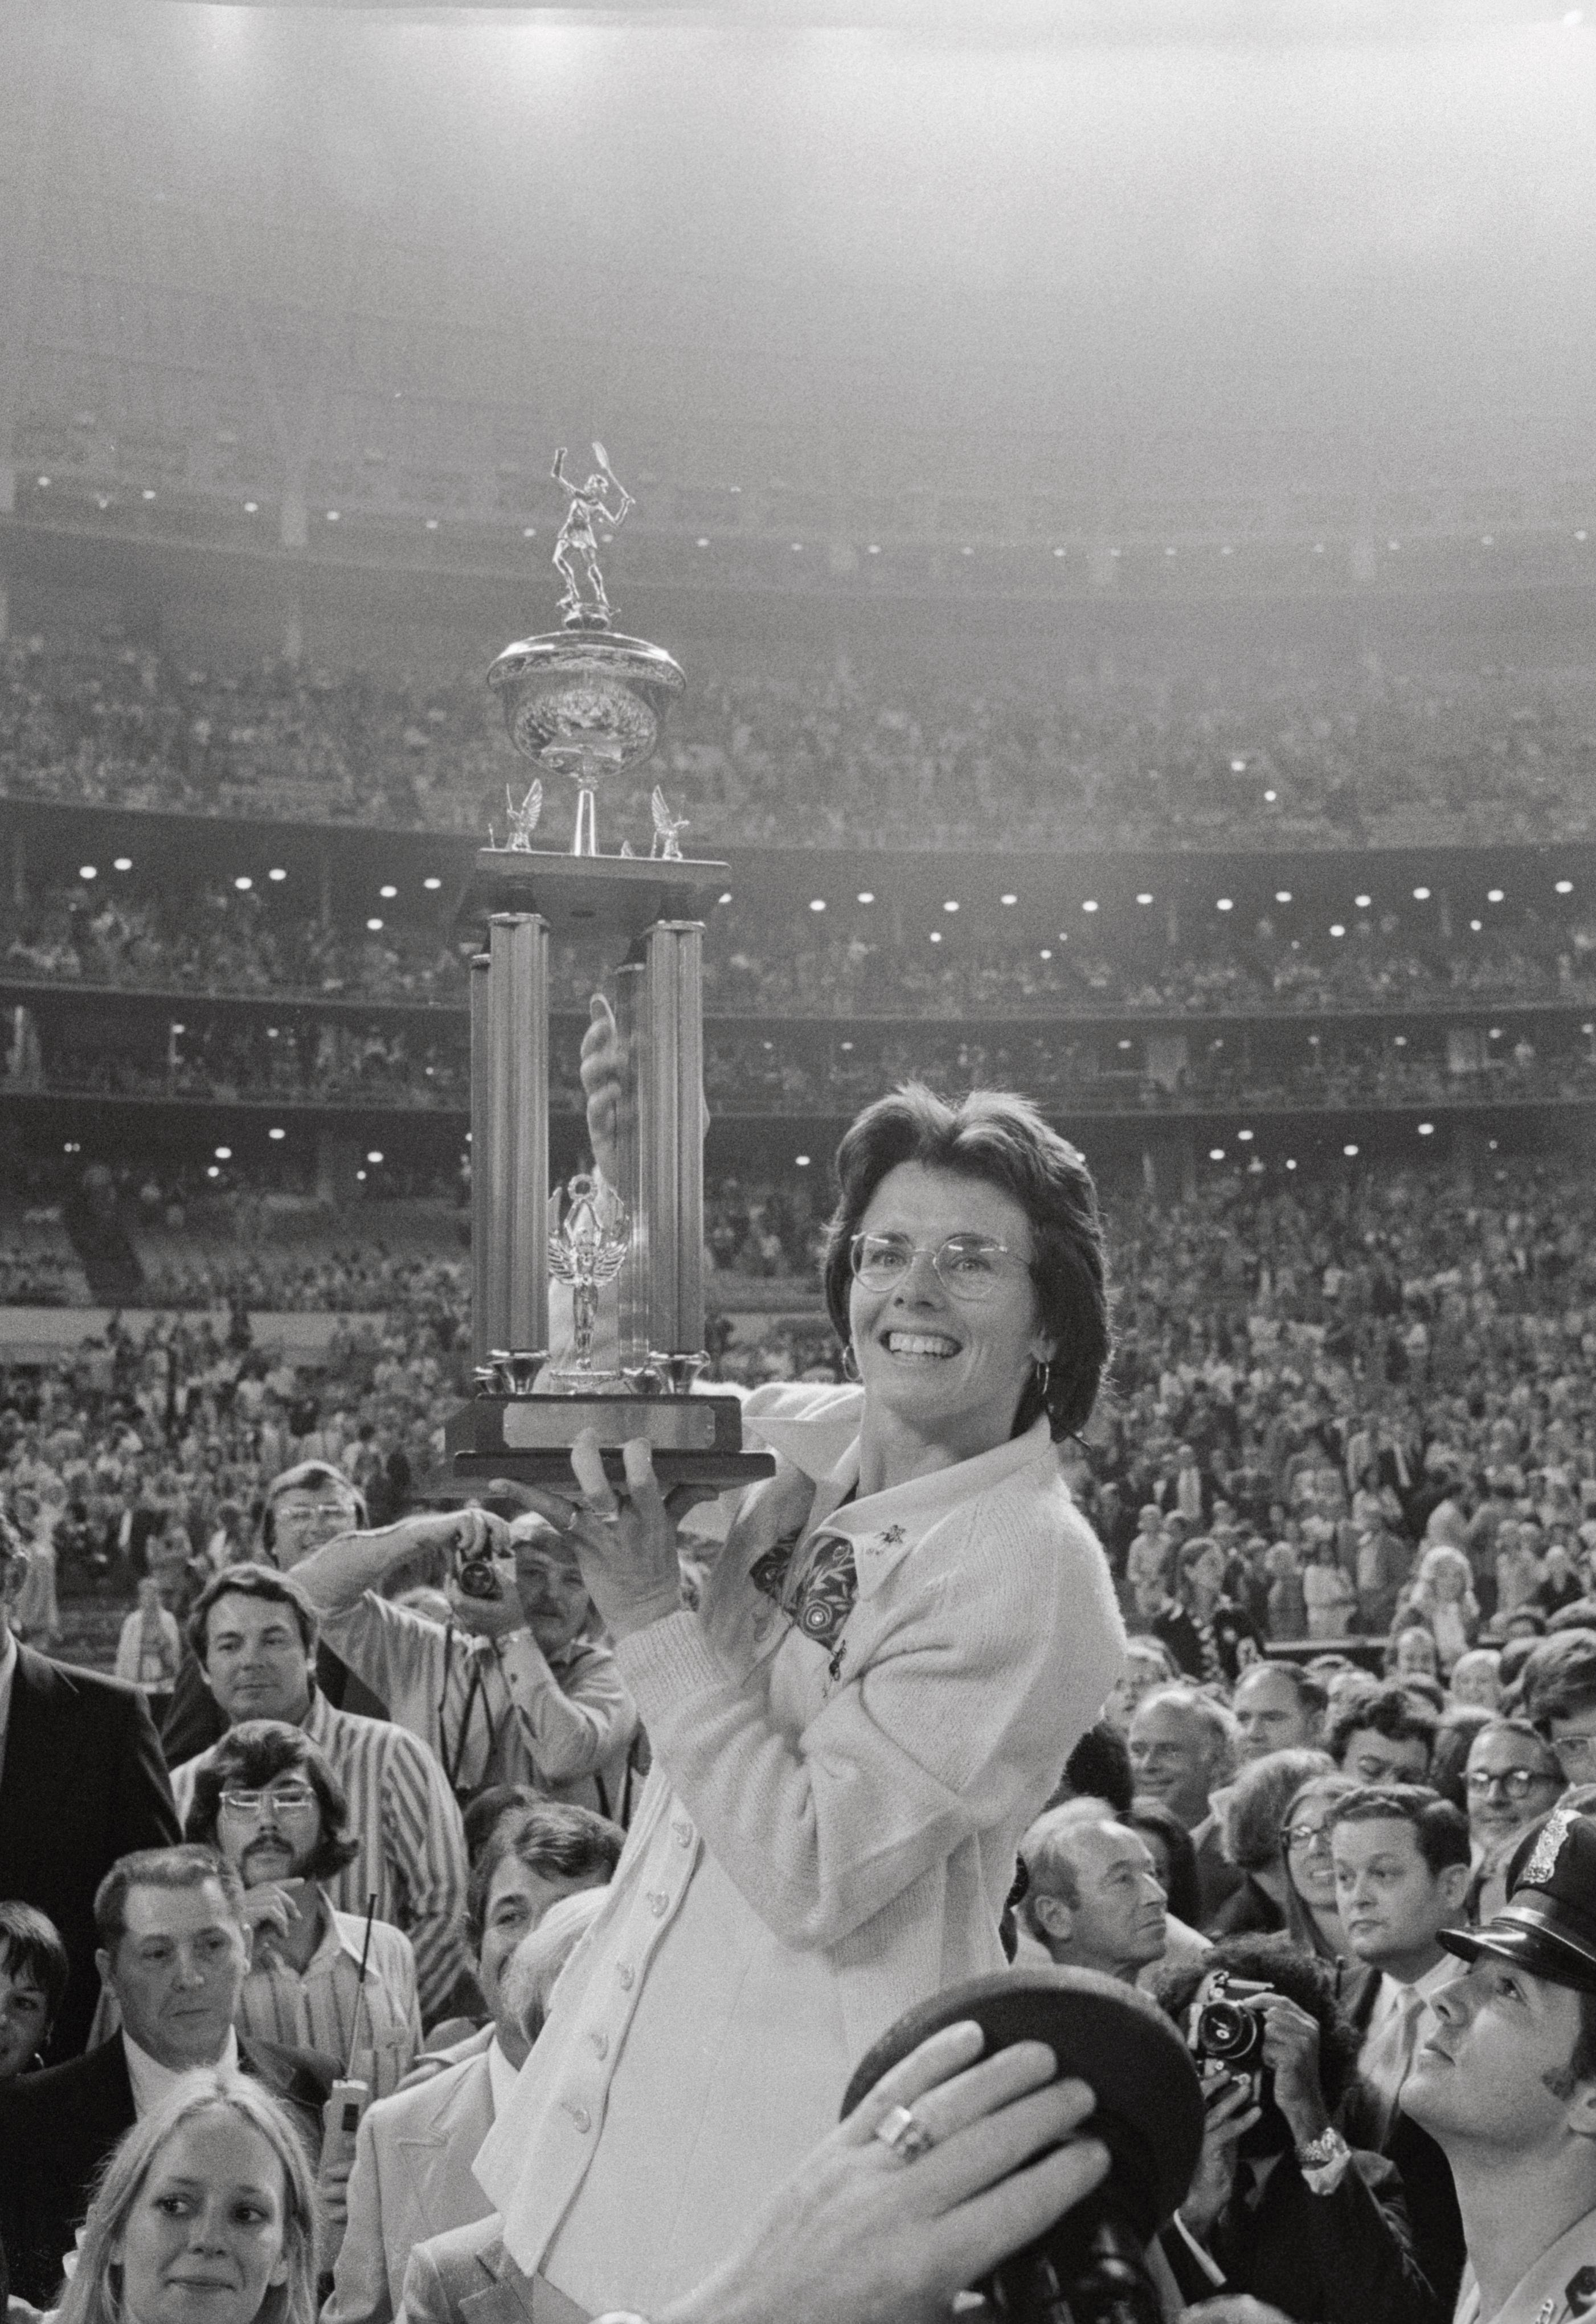 Billie Jean King was the No 1 female player in the world when she took part in the Battle of the Sexes